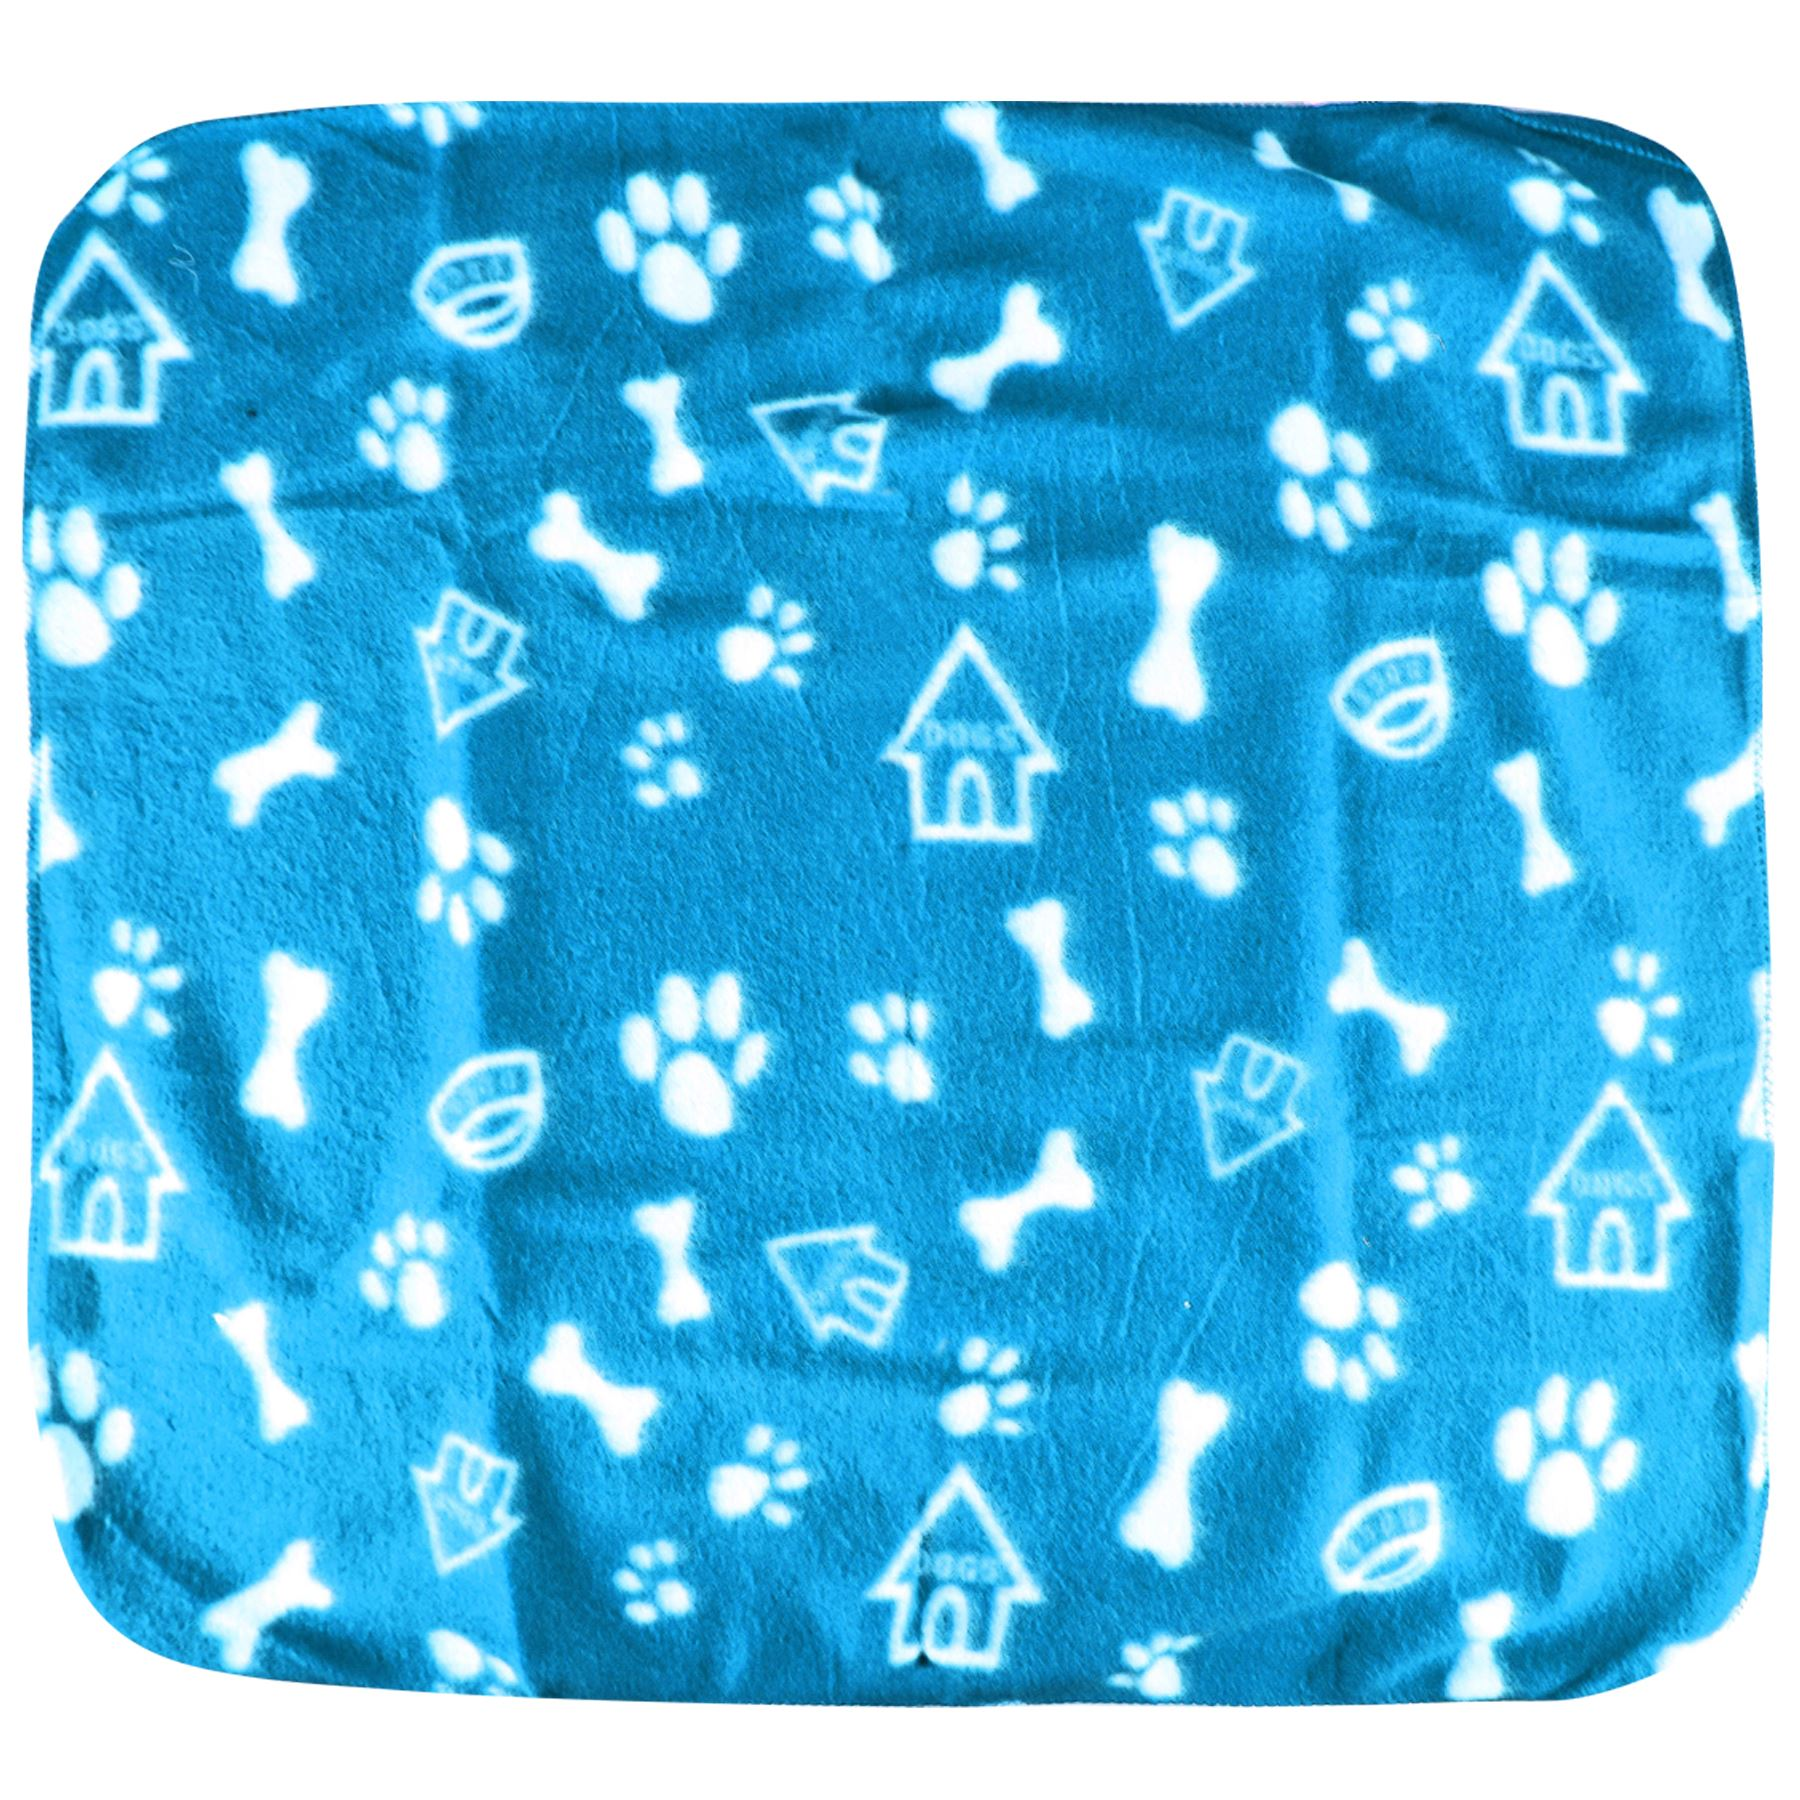 Pet-Blanket-Dogs-amp-Puppy-Cat-Paw-Print-Soft-Warm-Fleece-Bed-Travel-Basket-Car thumbnail 22